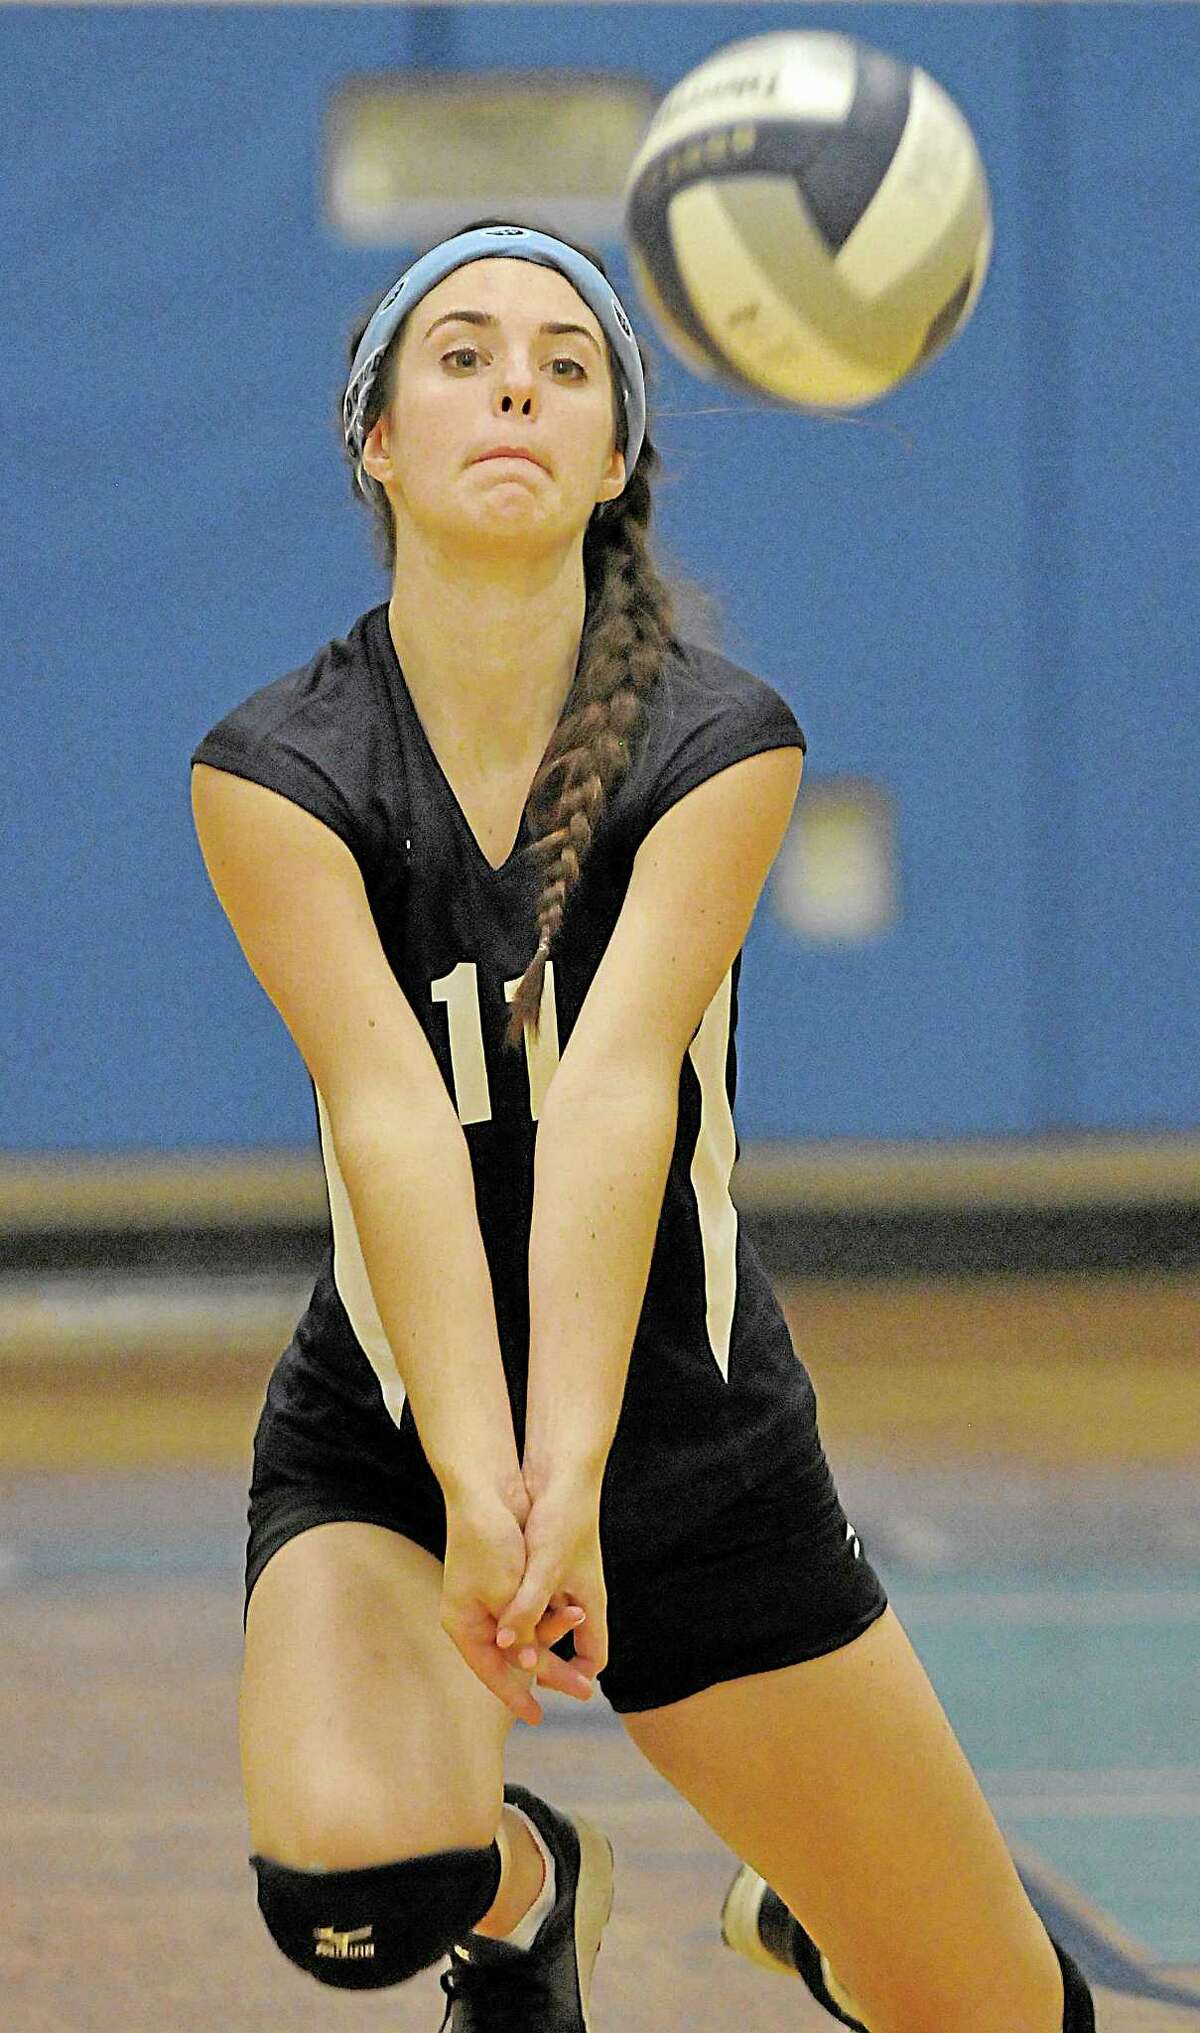 Middletown's Liza Marino receives a serve from Bristol Eastern Wednesday evening. Bristol Eastern won all three sets, 25-15, 25-13, and 25-17.